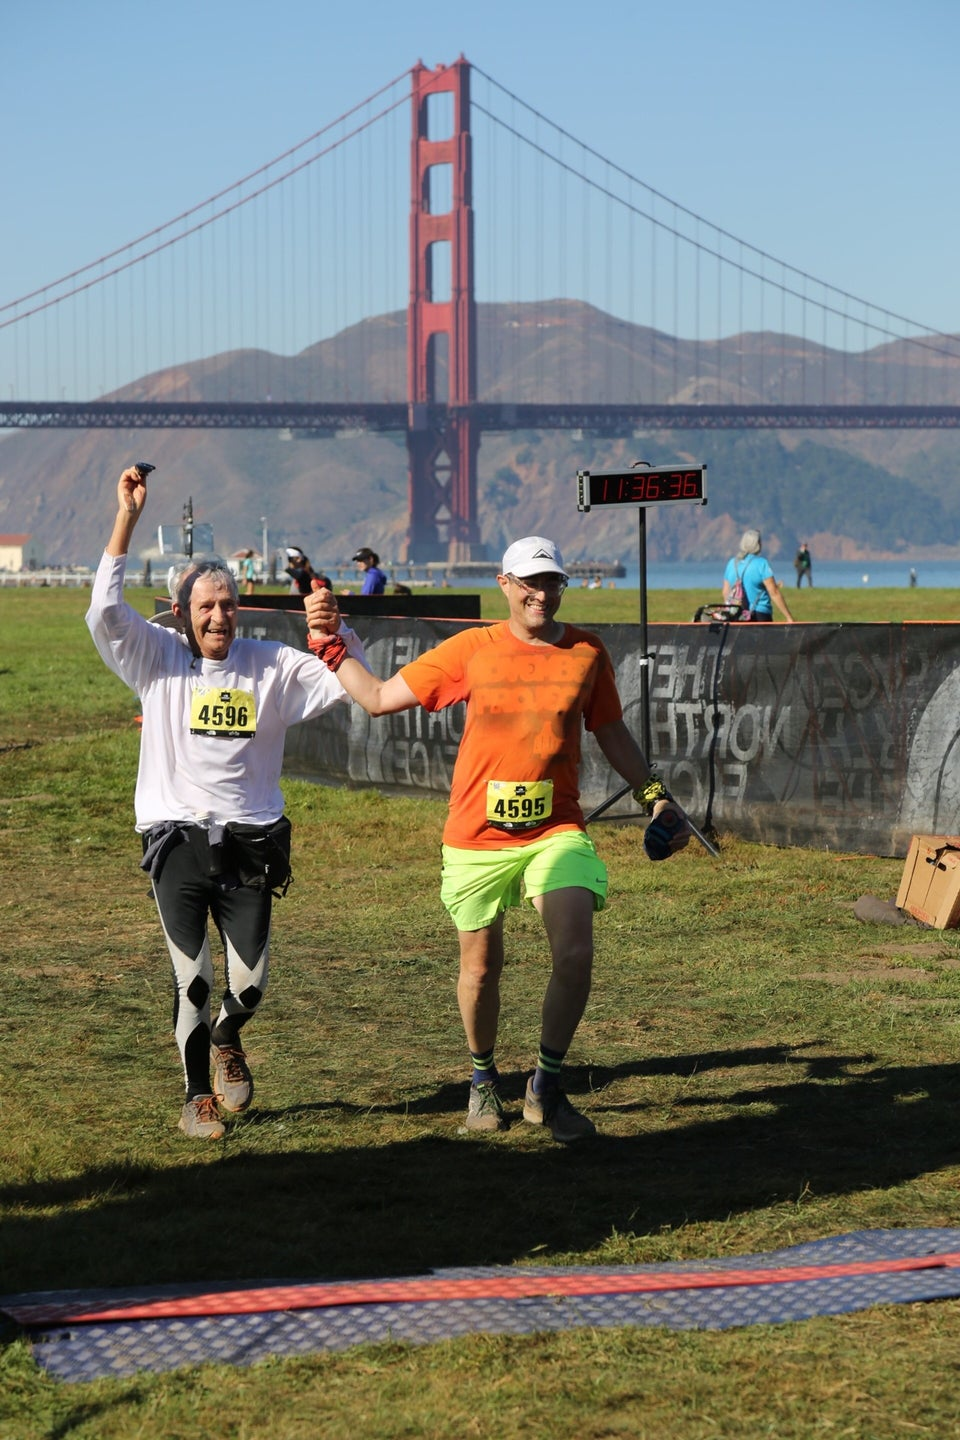 Hasan and Tantek side by side holding raised hands between them, smiling and about to cross The North Face Endurance Challenge finish line in Crissy Field, San Francisco, with the Golden Gate Bridge and Marin Headlands in the background under a clear blue sky.